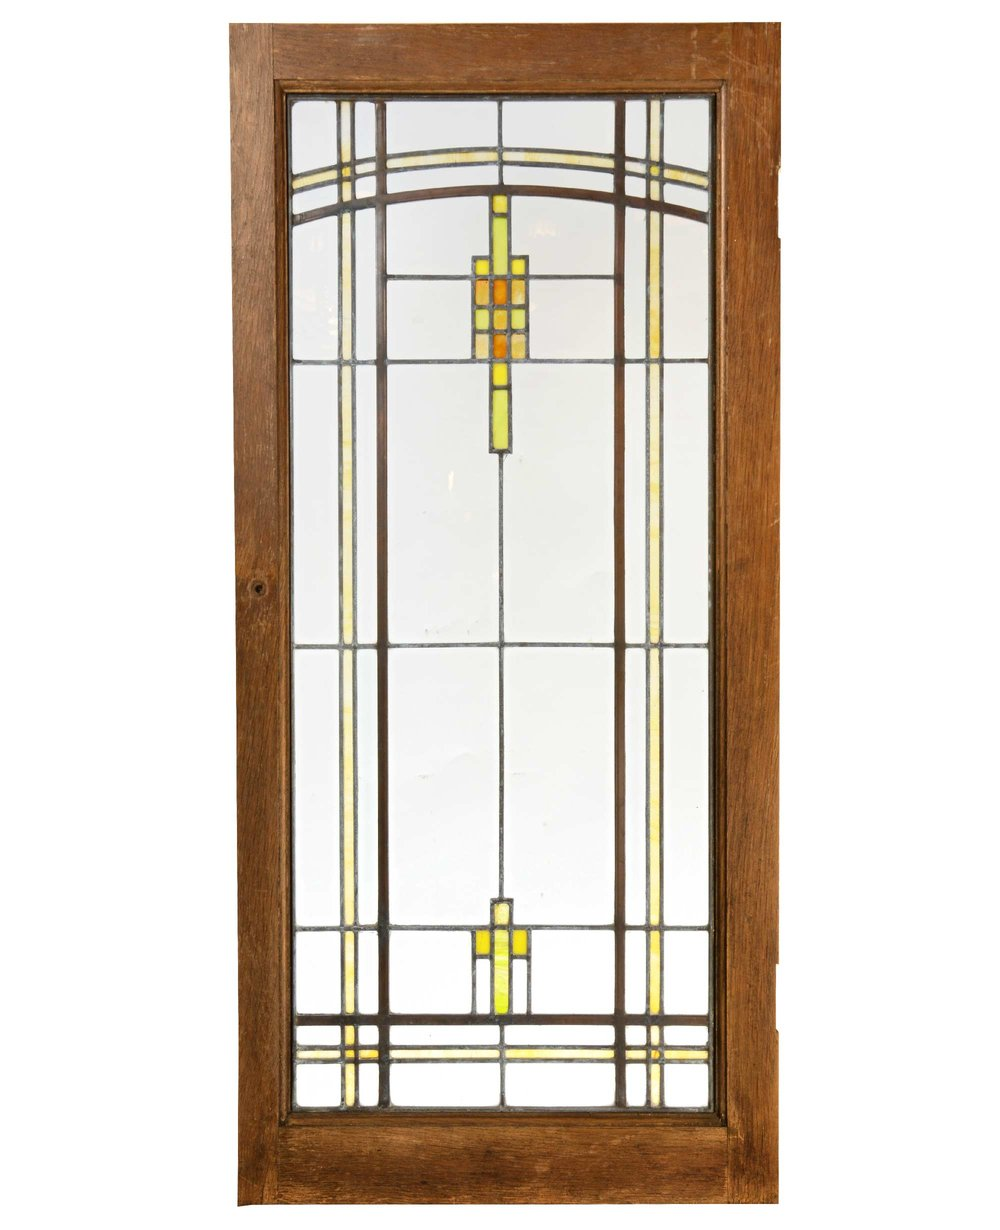 46826-elmslie-leaded-glass-window.jpg